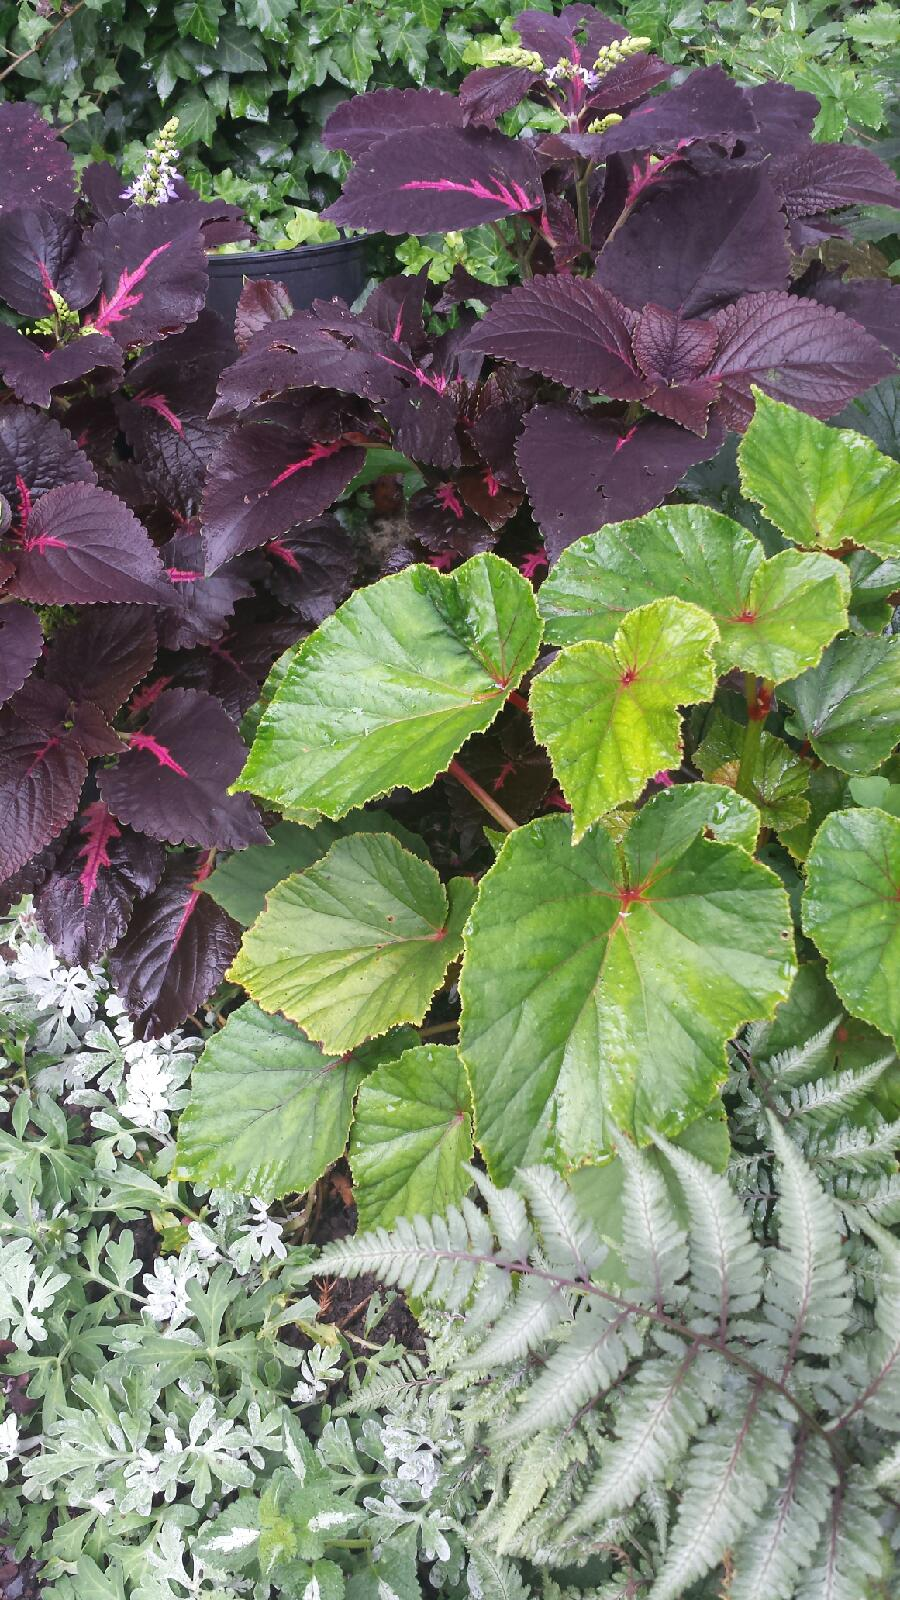 Perennial begonias, Japanese painted fern, and coleus make a beautiful shade foliage color combination, adding to the serenity of the garden.